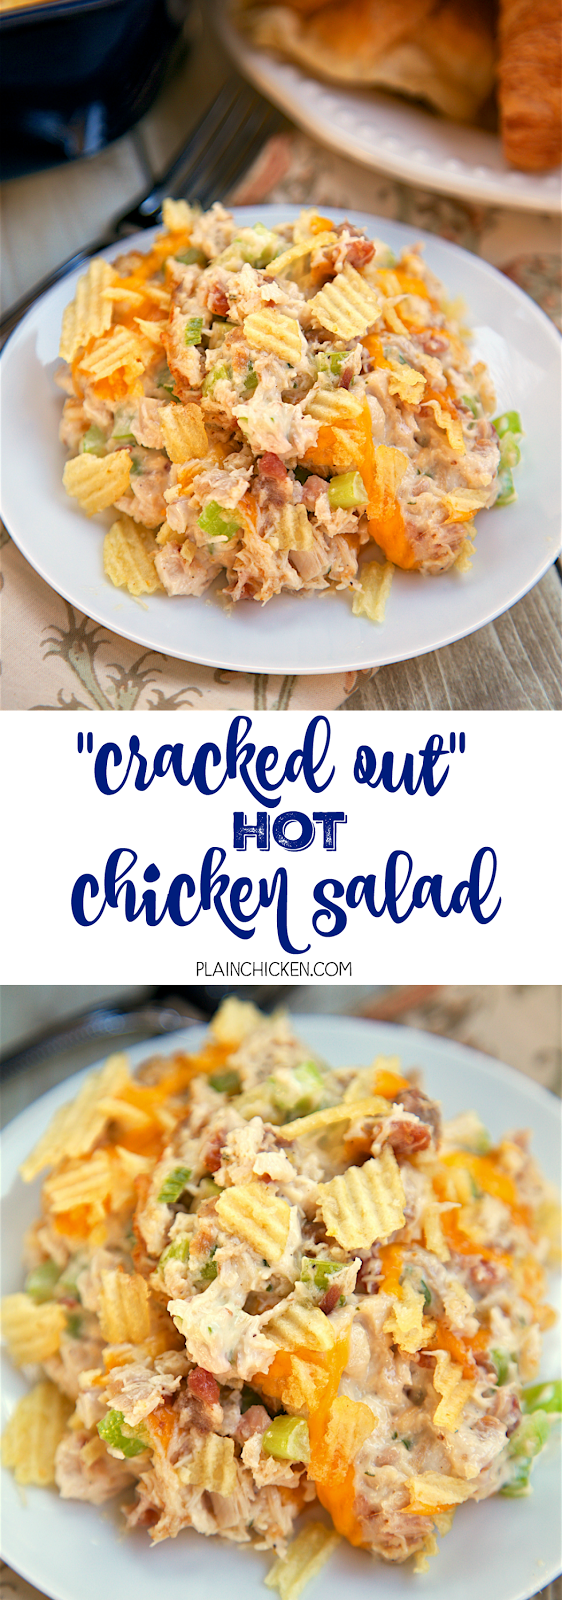 """Cracked Out"" Hot Chicken Salad - baked chicken salad loaded with cheddar, bacon and ranch! Chicken, mayonnaise, celery, lemon juice, cheddar cheese, worcestershire, bacon, ranch dressing mix, potato chips. SOOO good! Can make ahead of time and refrigerate until ready to serve. Great for a quick brunch, lunch or dinner."